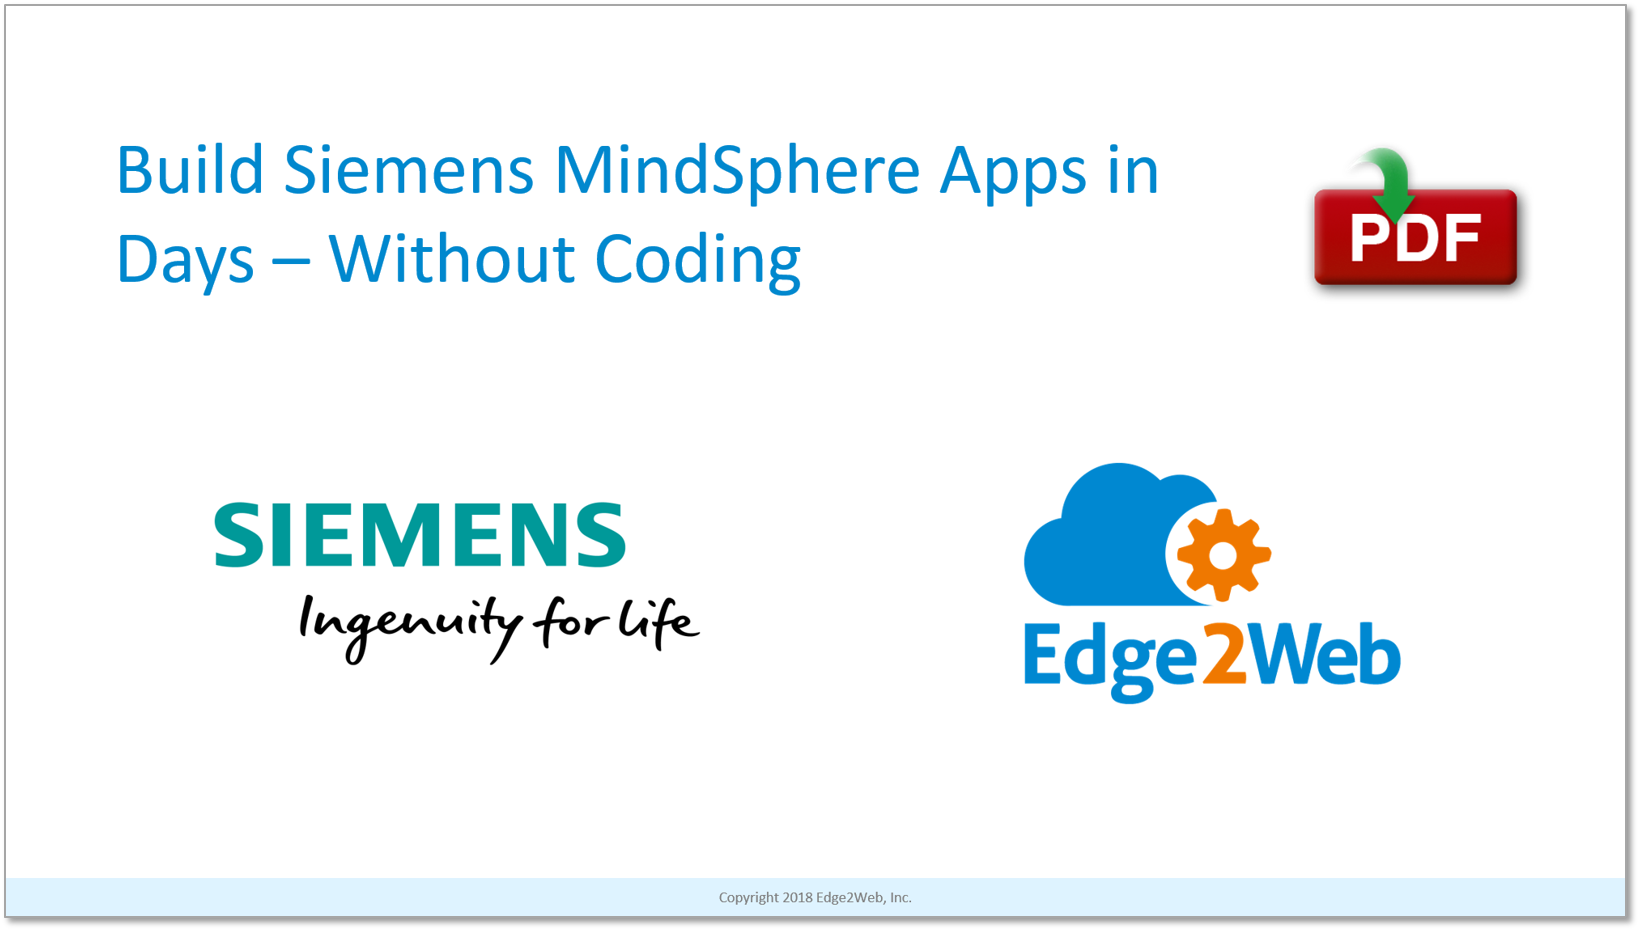 Build Siemens MindSphere Apps in Days - Without Coding! | Edge2Web com